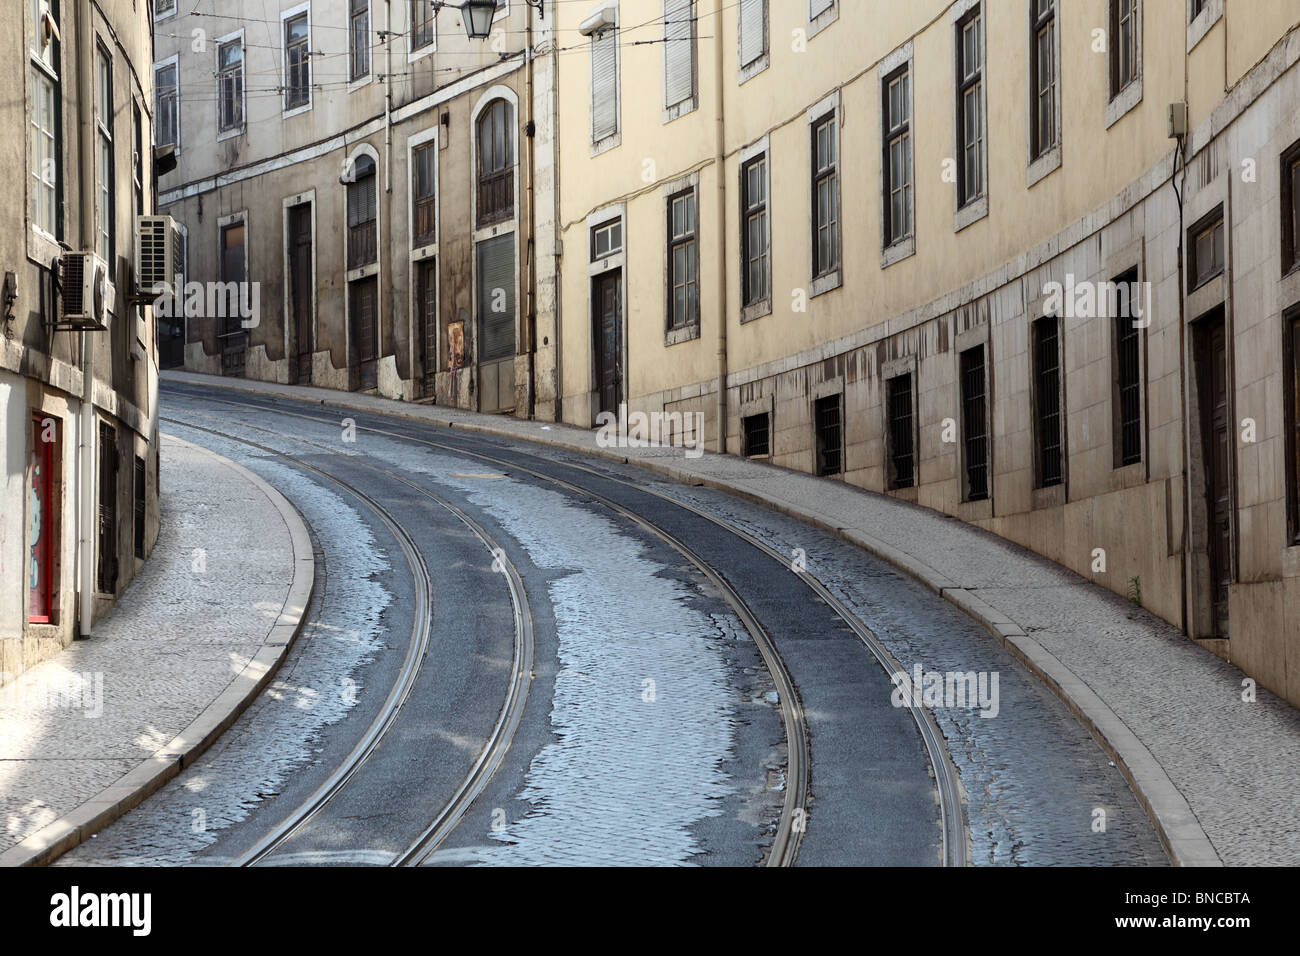 Street with tramway rails in Lisbon, Portugal - Stock Image